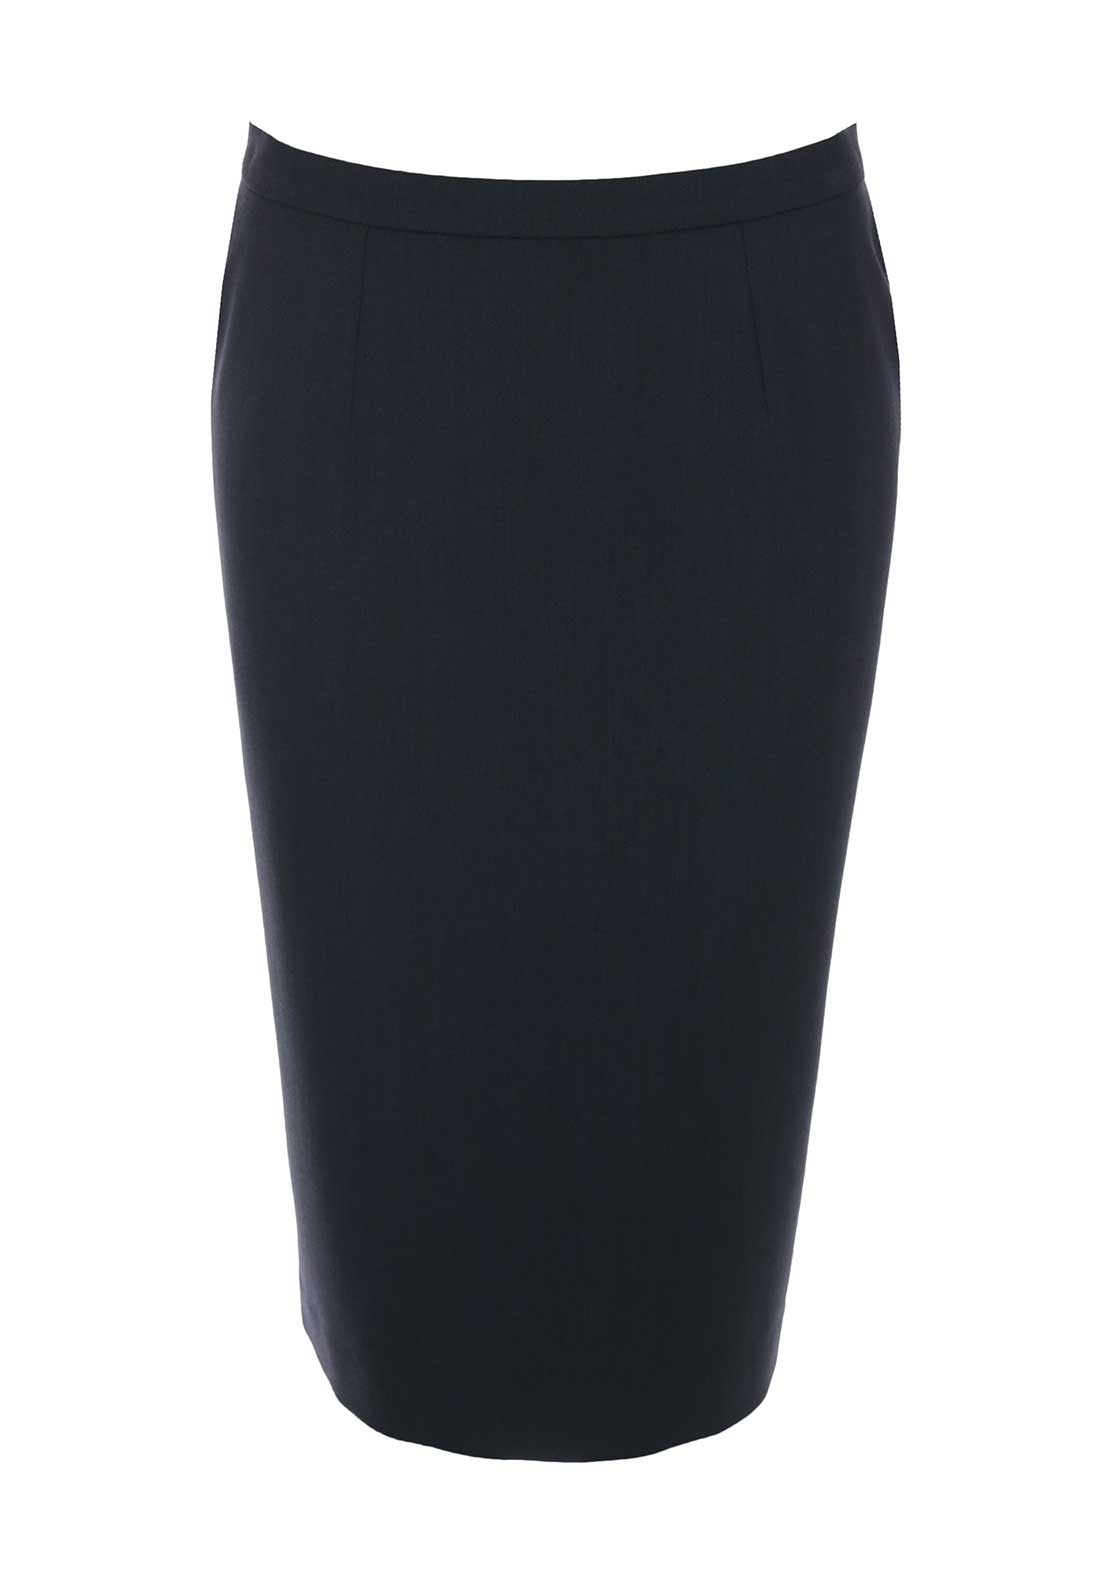 Christina Felix Straight Skirt, Charcoal Grey